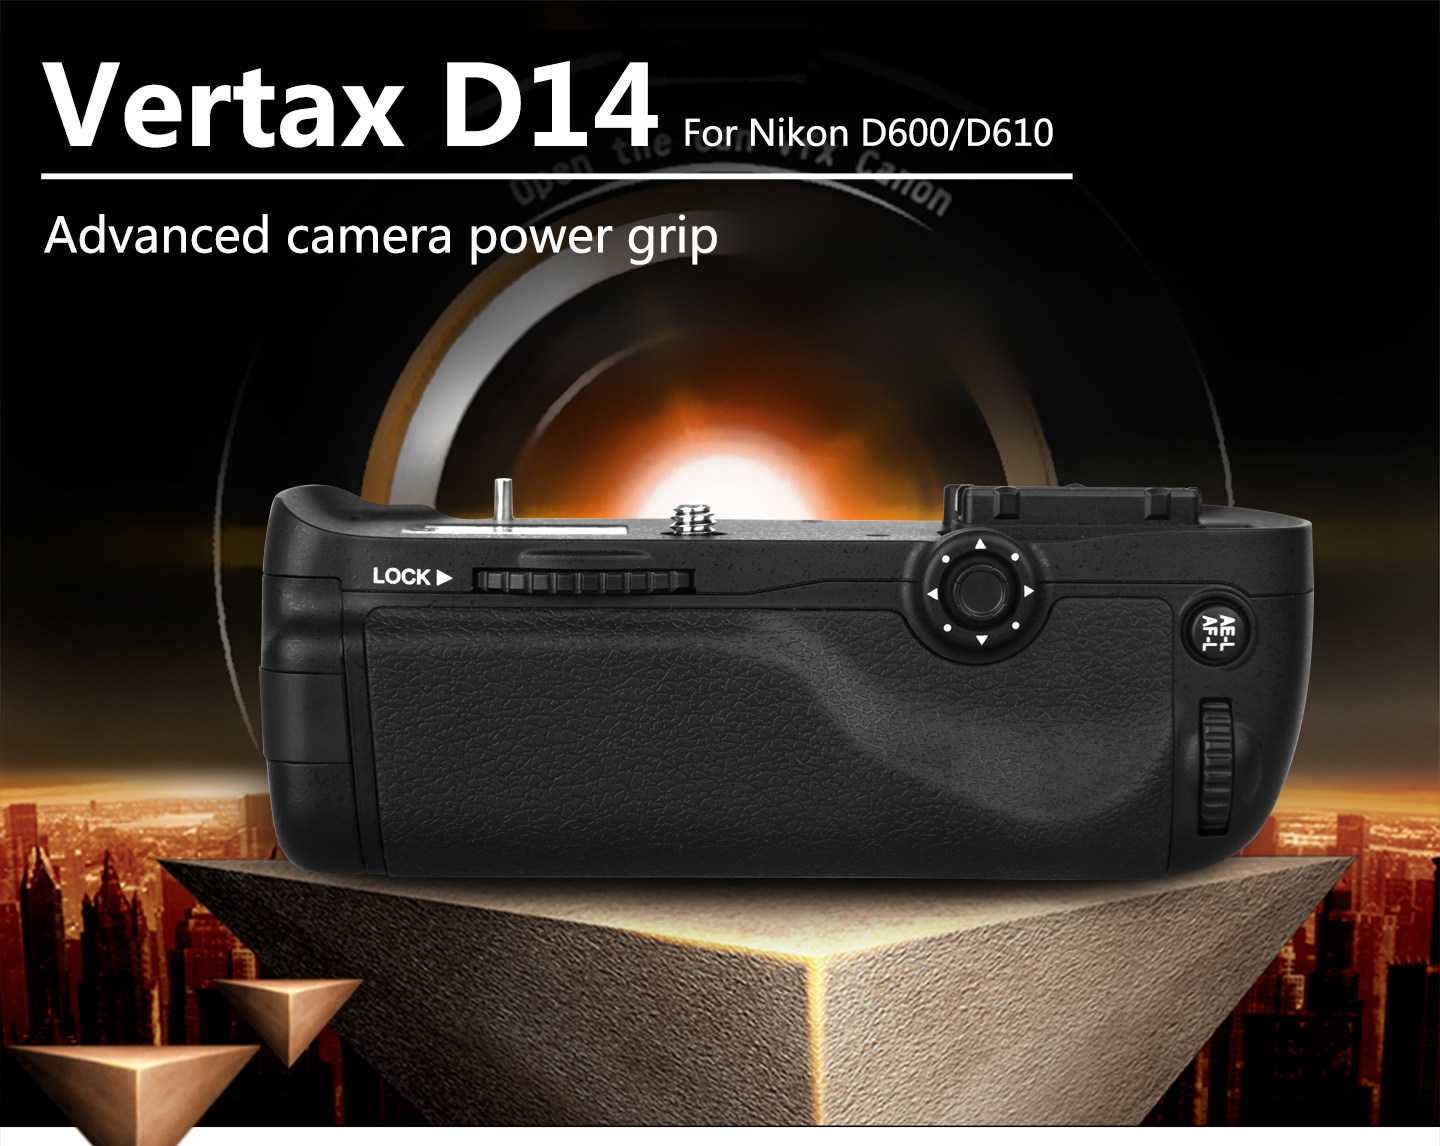 Vertax D14 Adcanced camera power grip For Nikon D600/D610